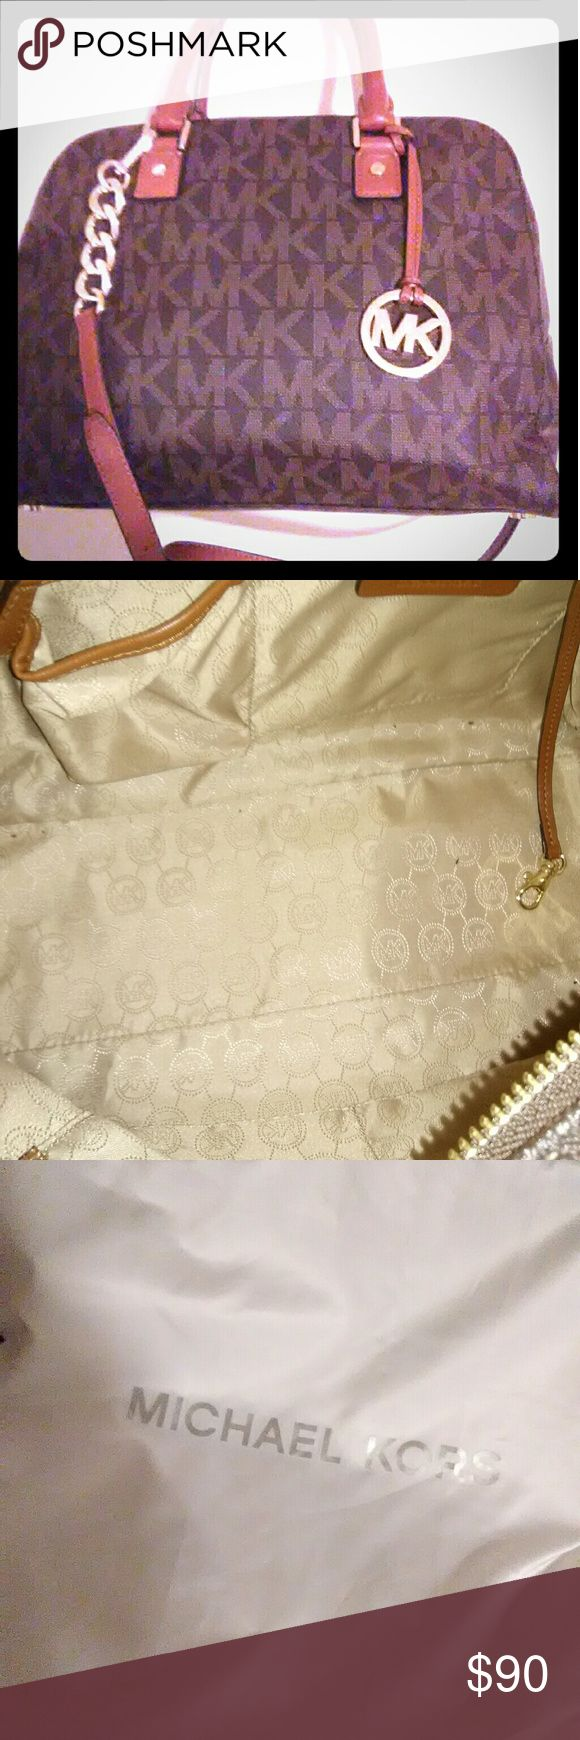 """Michael Kors handbag Authentic!! Used only a few times. Dust bag and tags included. No stains, tears or flaws except for a slight musty smell that is a mystery to me as it has never been damp or wet and stored in same location as my other stored bags. None of them have that issue. Approximately 13.5"""" long, 10"""" tall, 6"""" wide. Cross listed. Michael Kors Bags"""